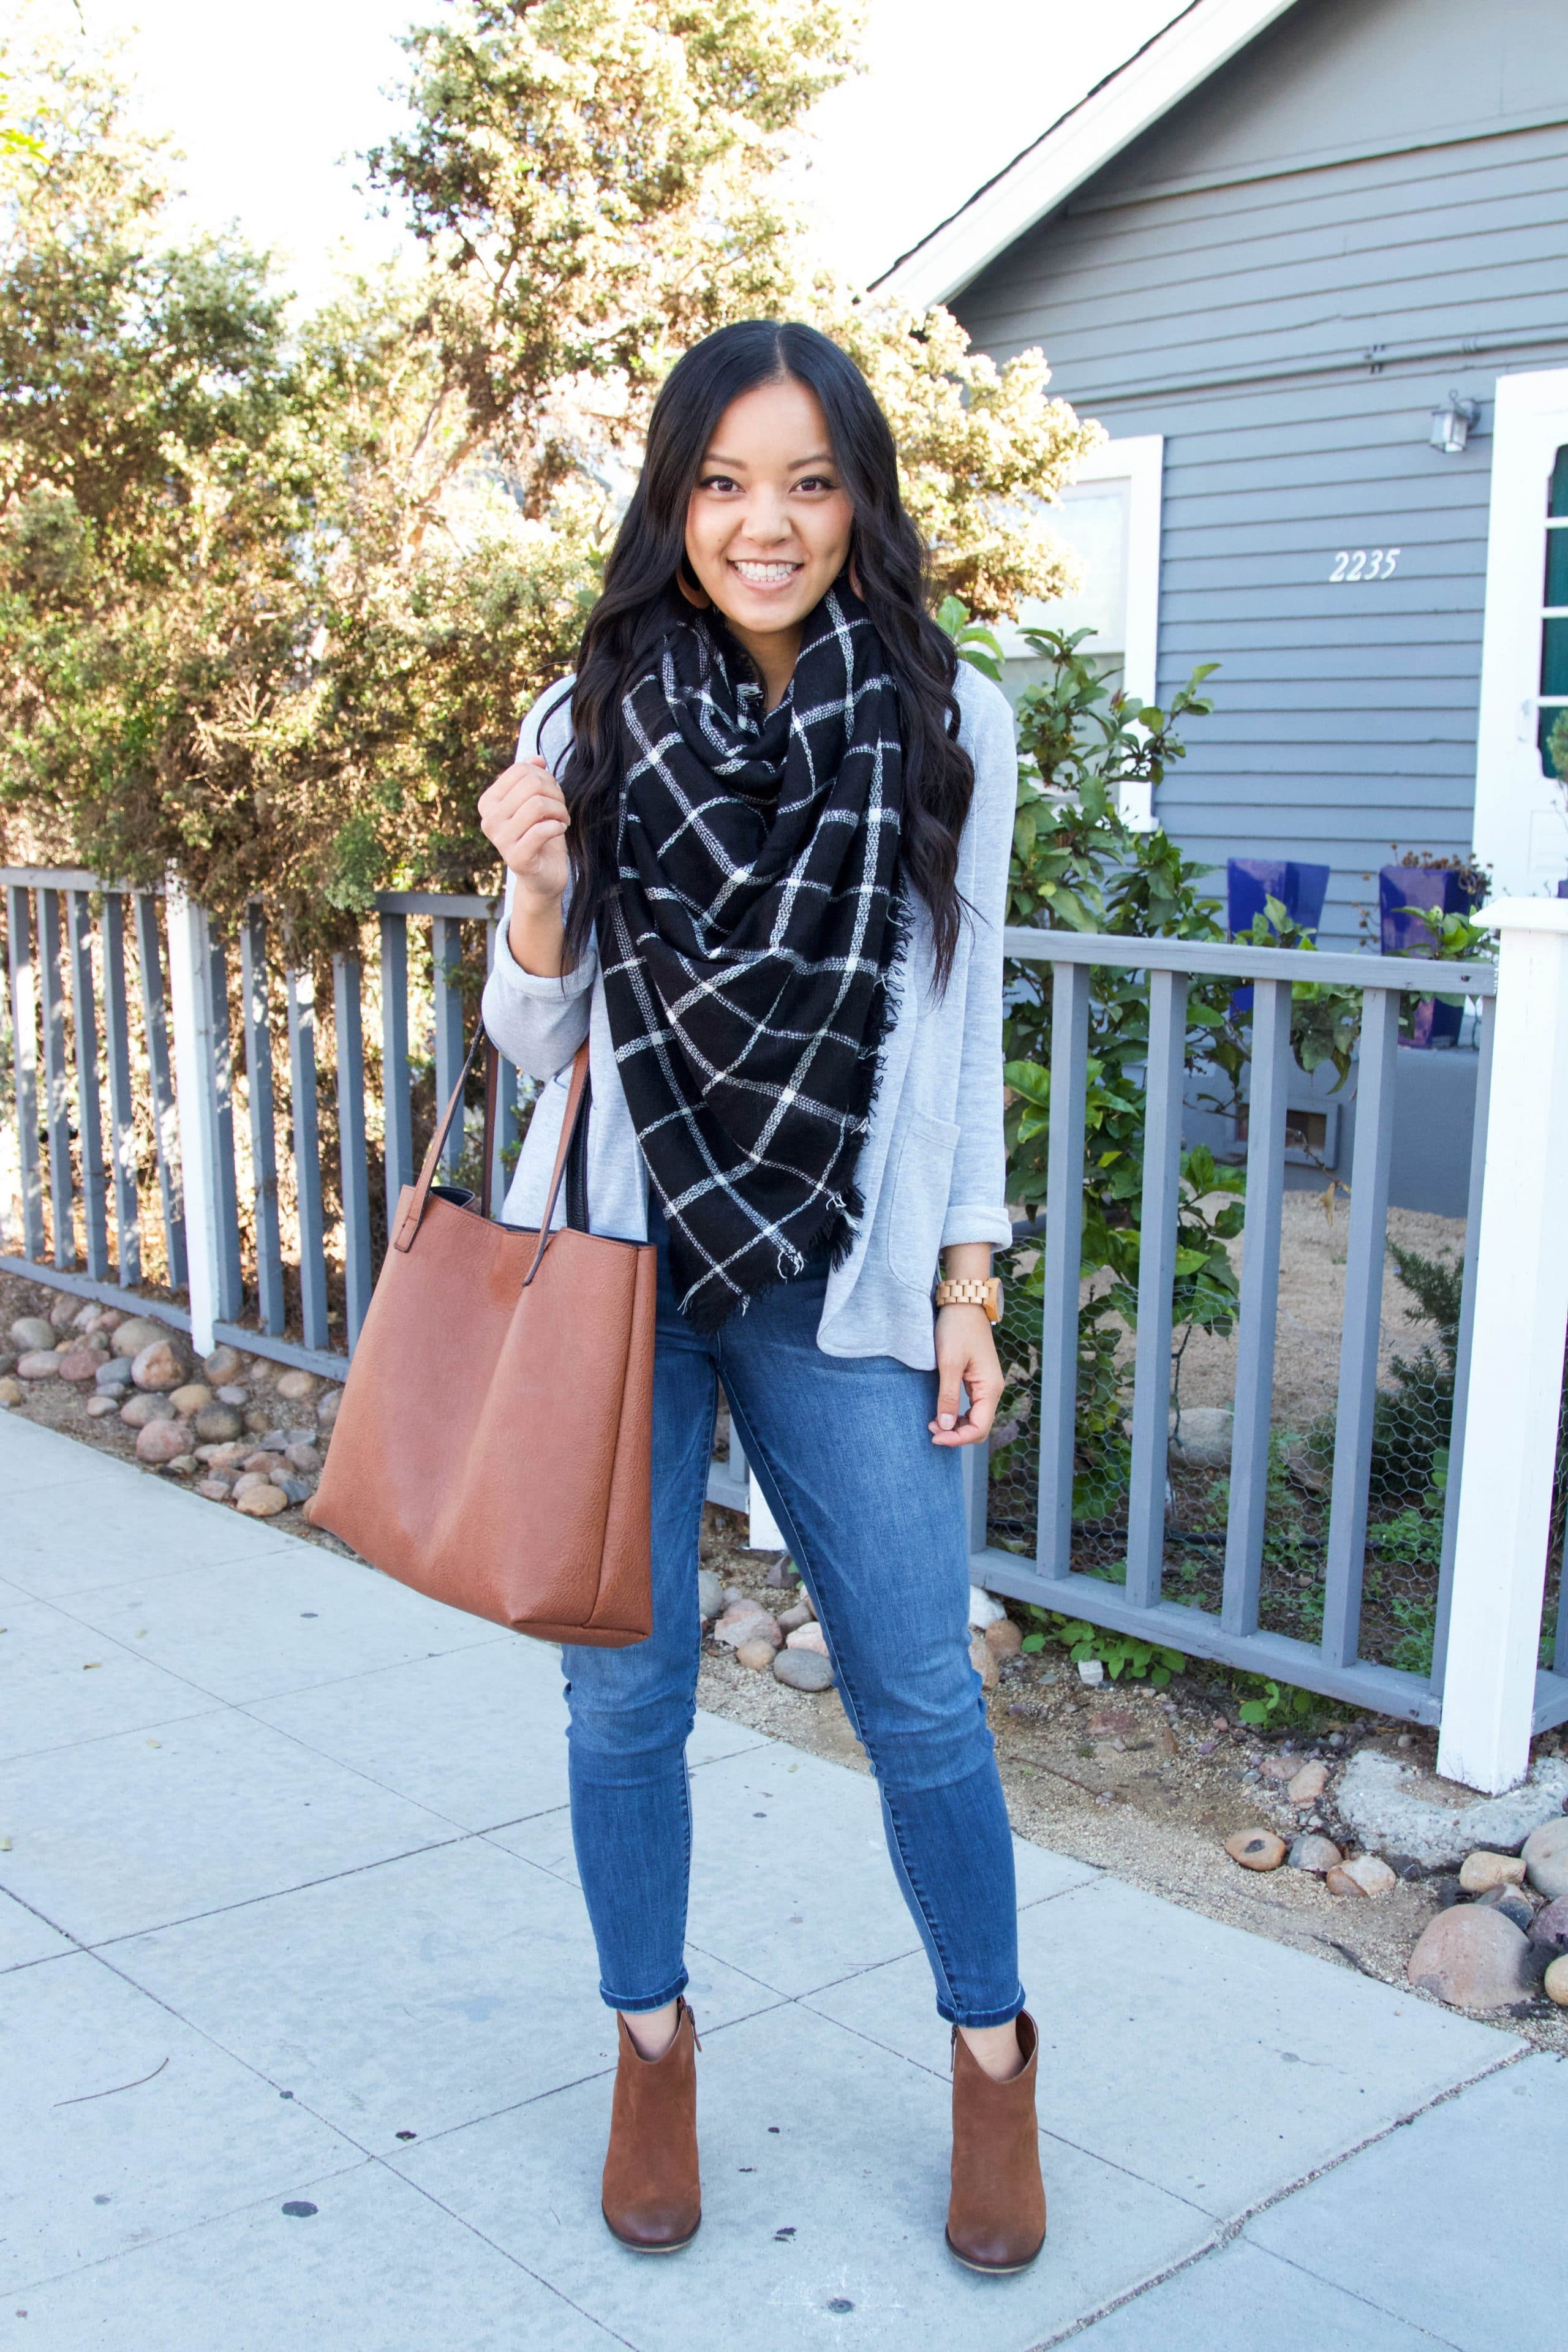 Blanket Scarf + Skinnies + Booties + Tote + Gray Blazer